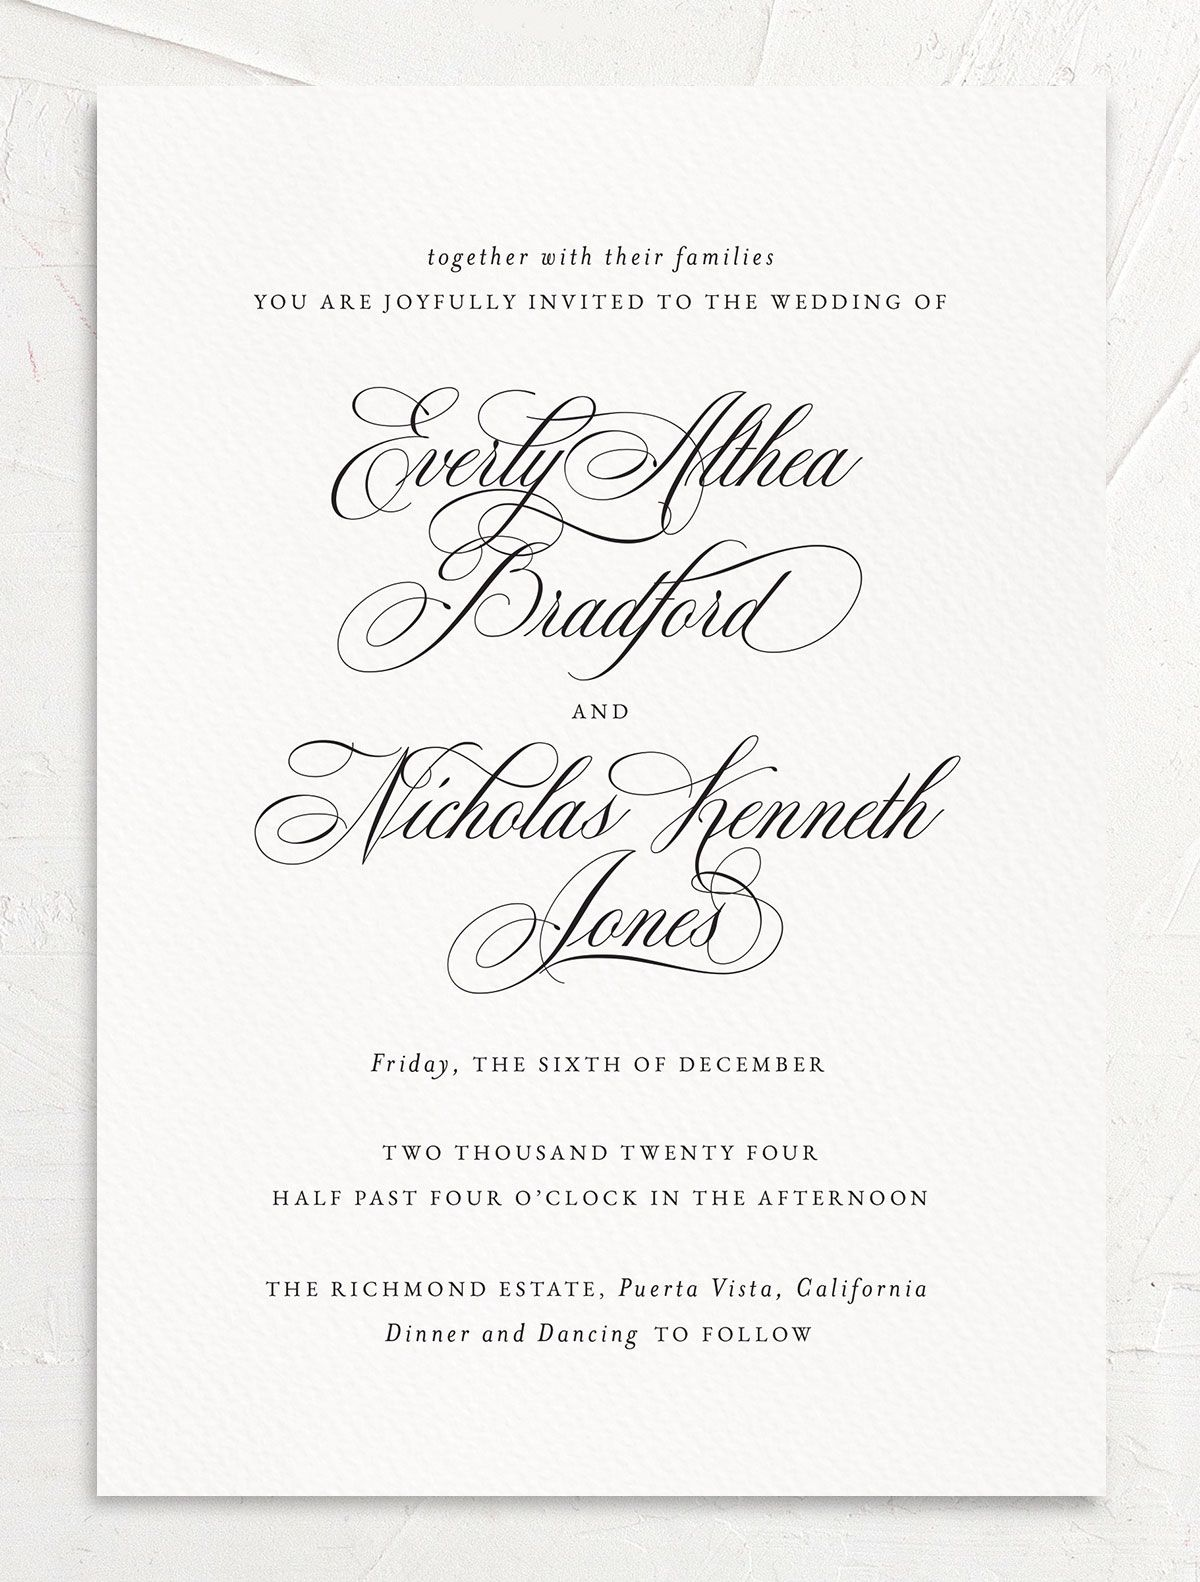 Exquisite Calligraphy Wedding Invitation front in white